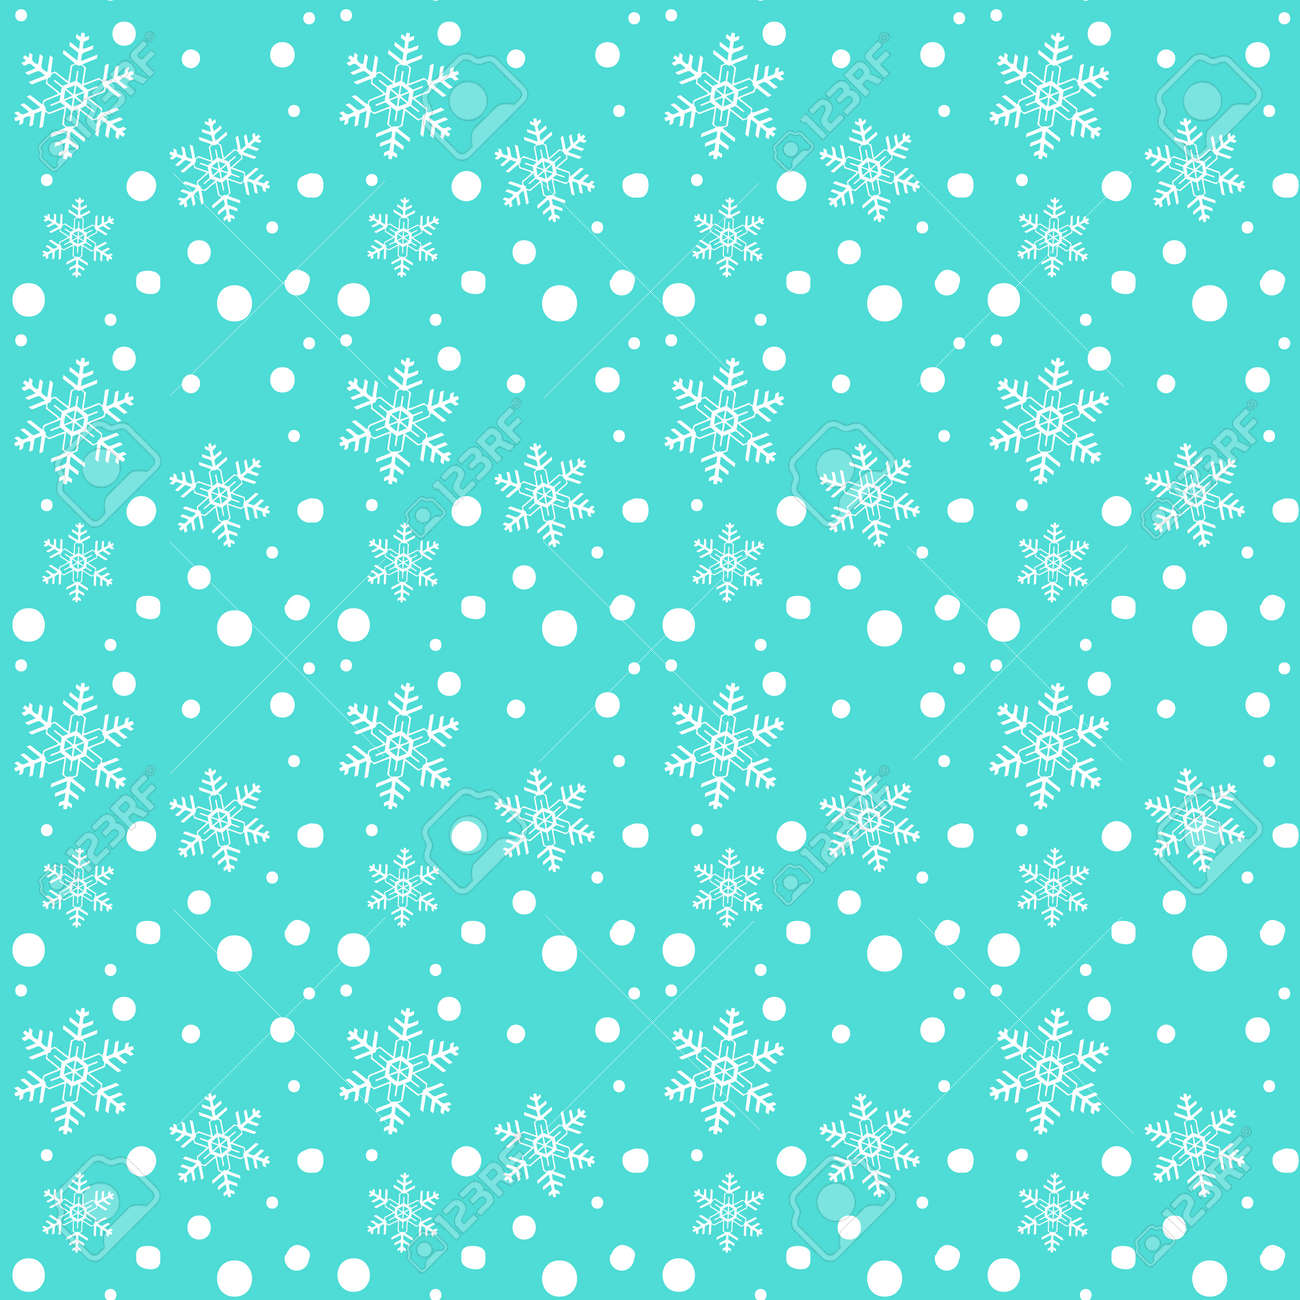 Abstract Winter White Snowflakes Falling Seamless Pattern Christmas Royalty Free Cliparts Vectors And Stock Illustration Image 90103031